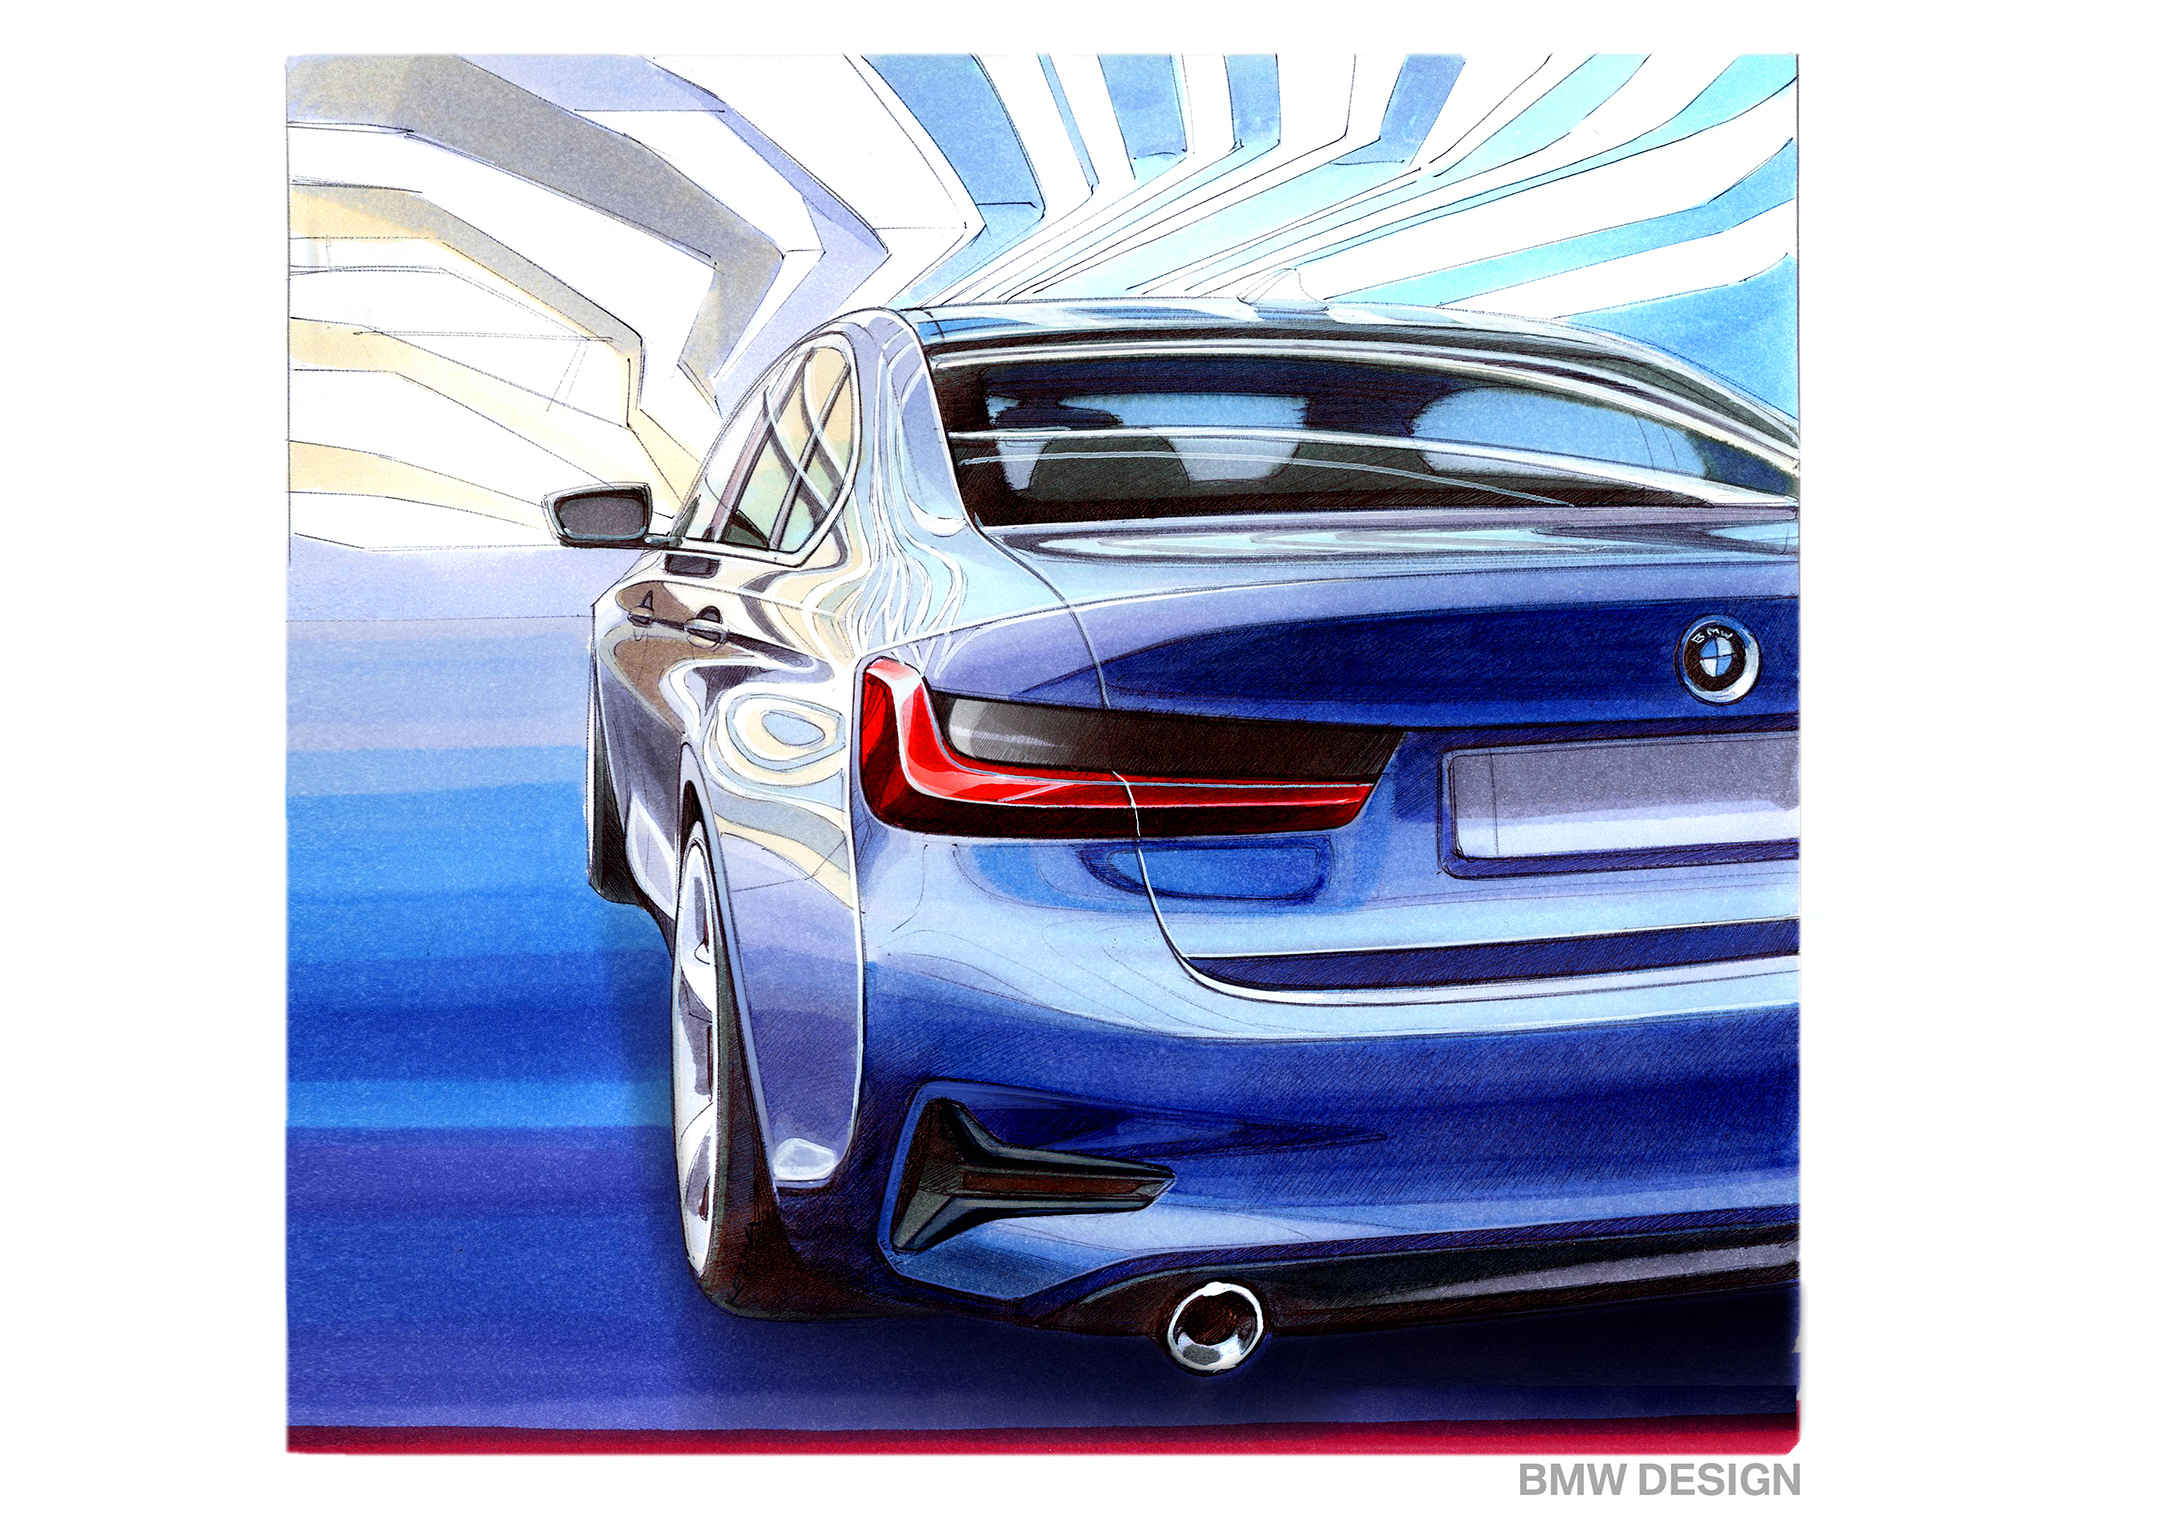 BMW Serie 3 Berline - 2018 - sketch design - rear / arrière